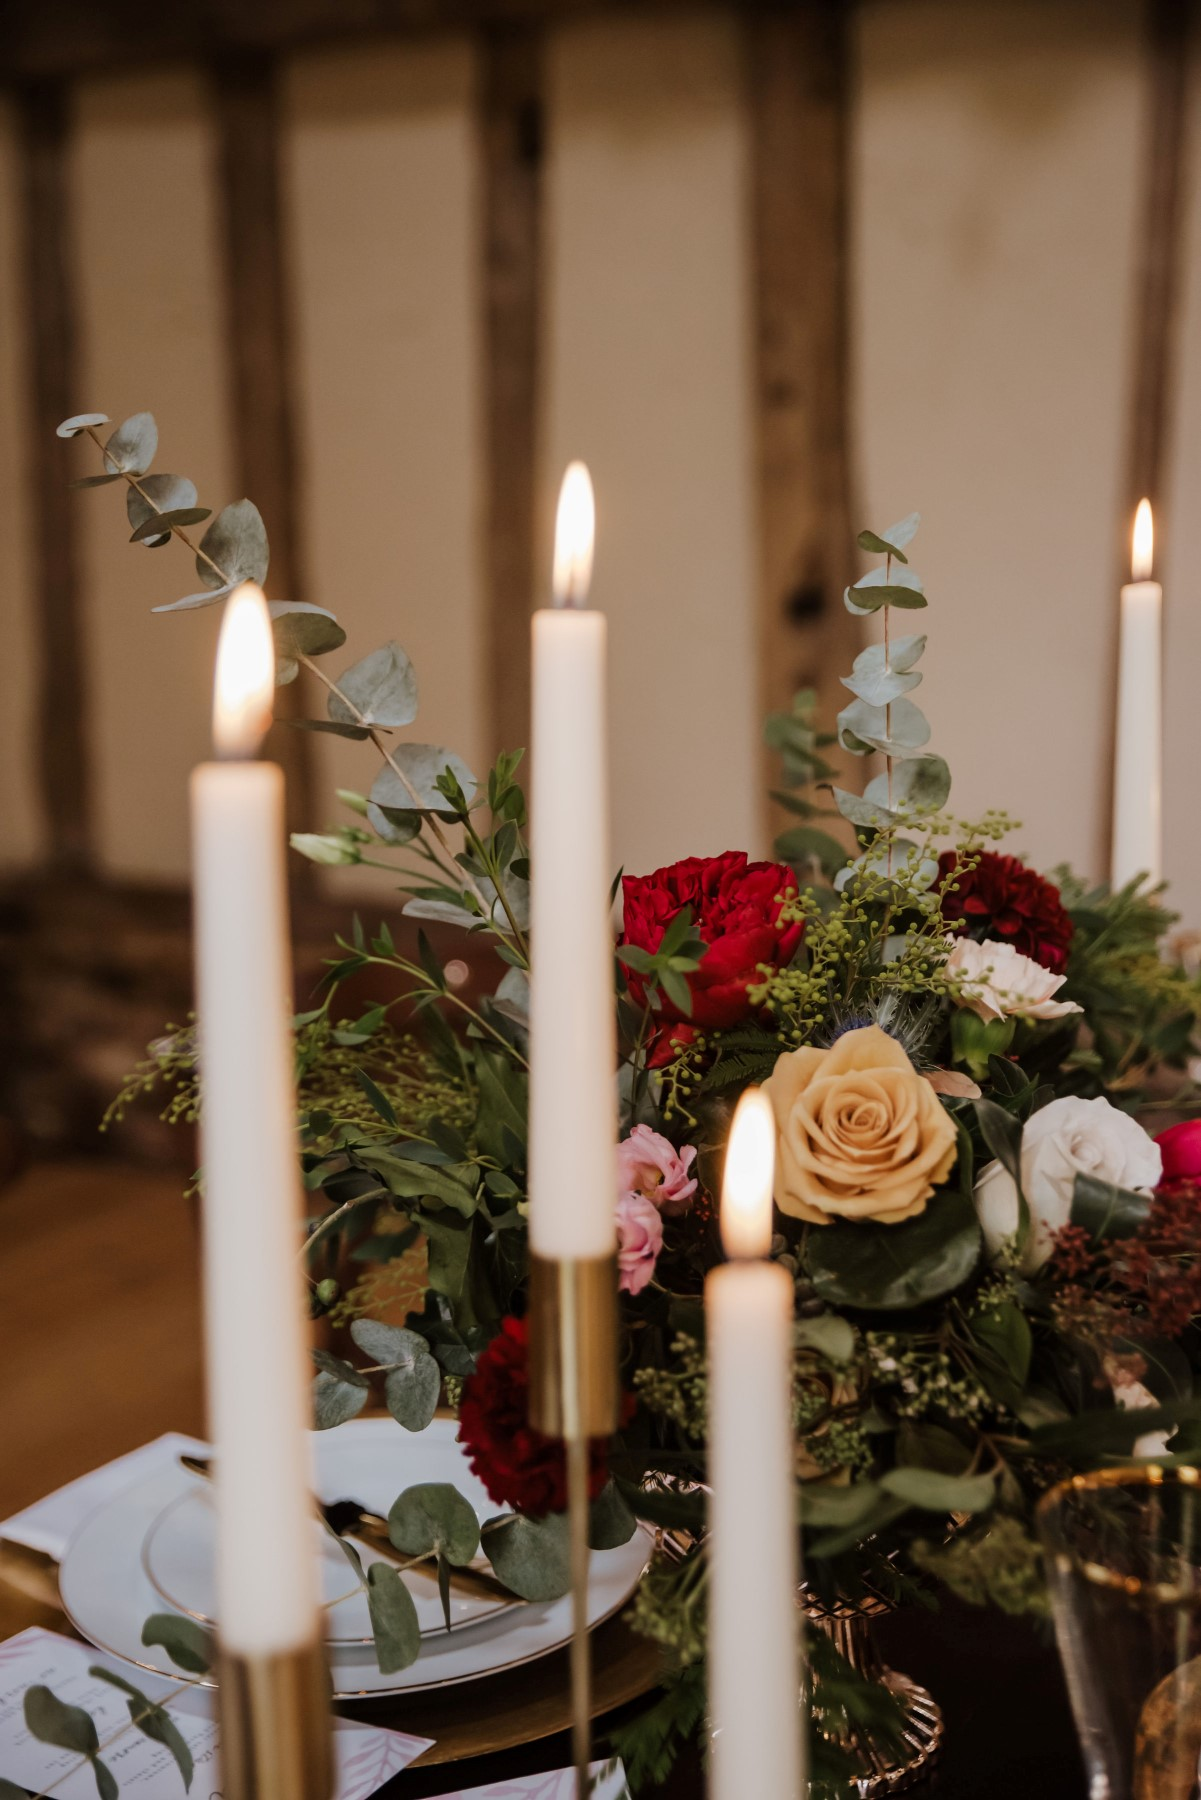 Roshni Photography- Barn Wedding Shoot- Candles